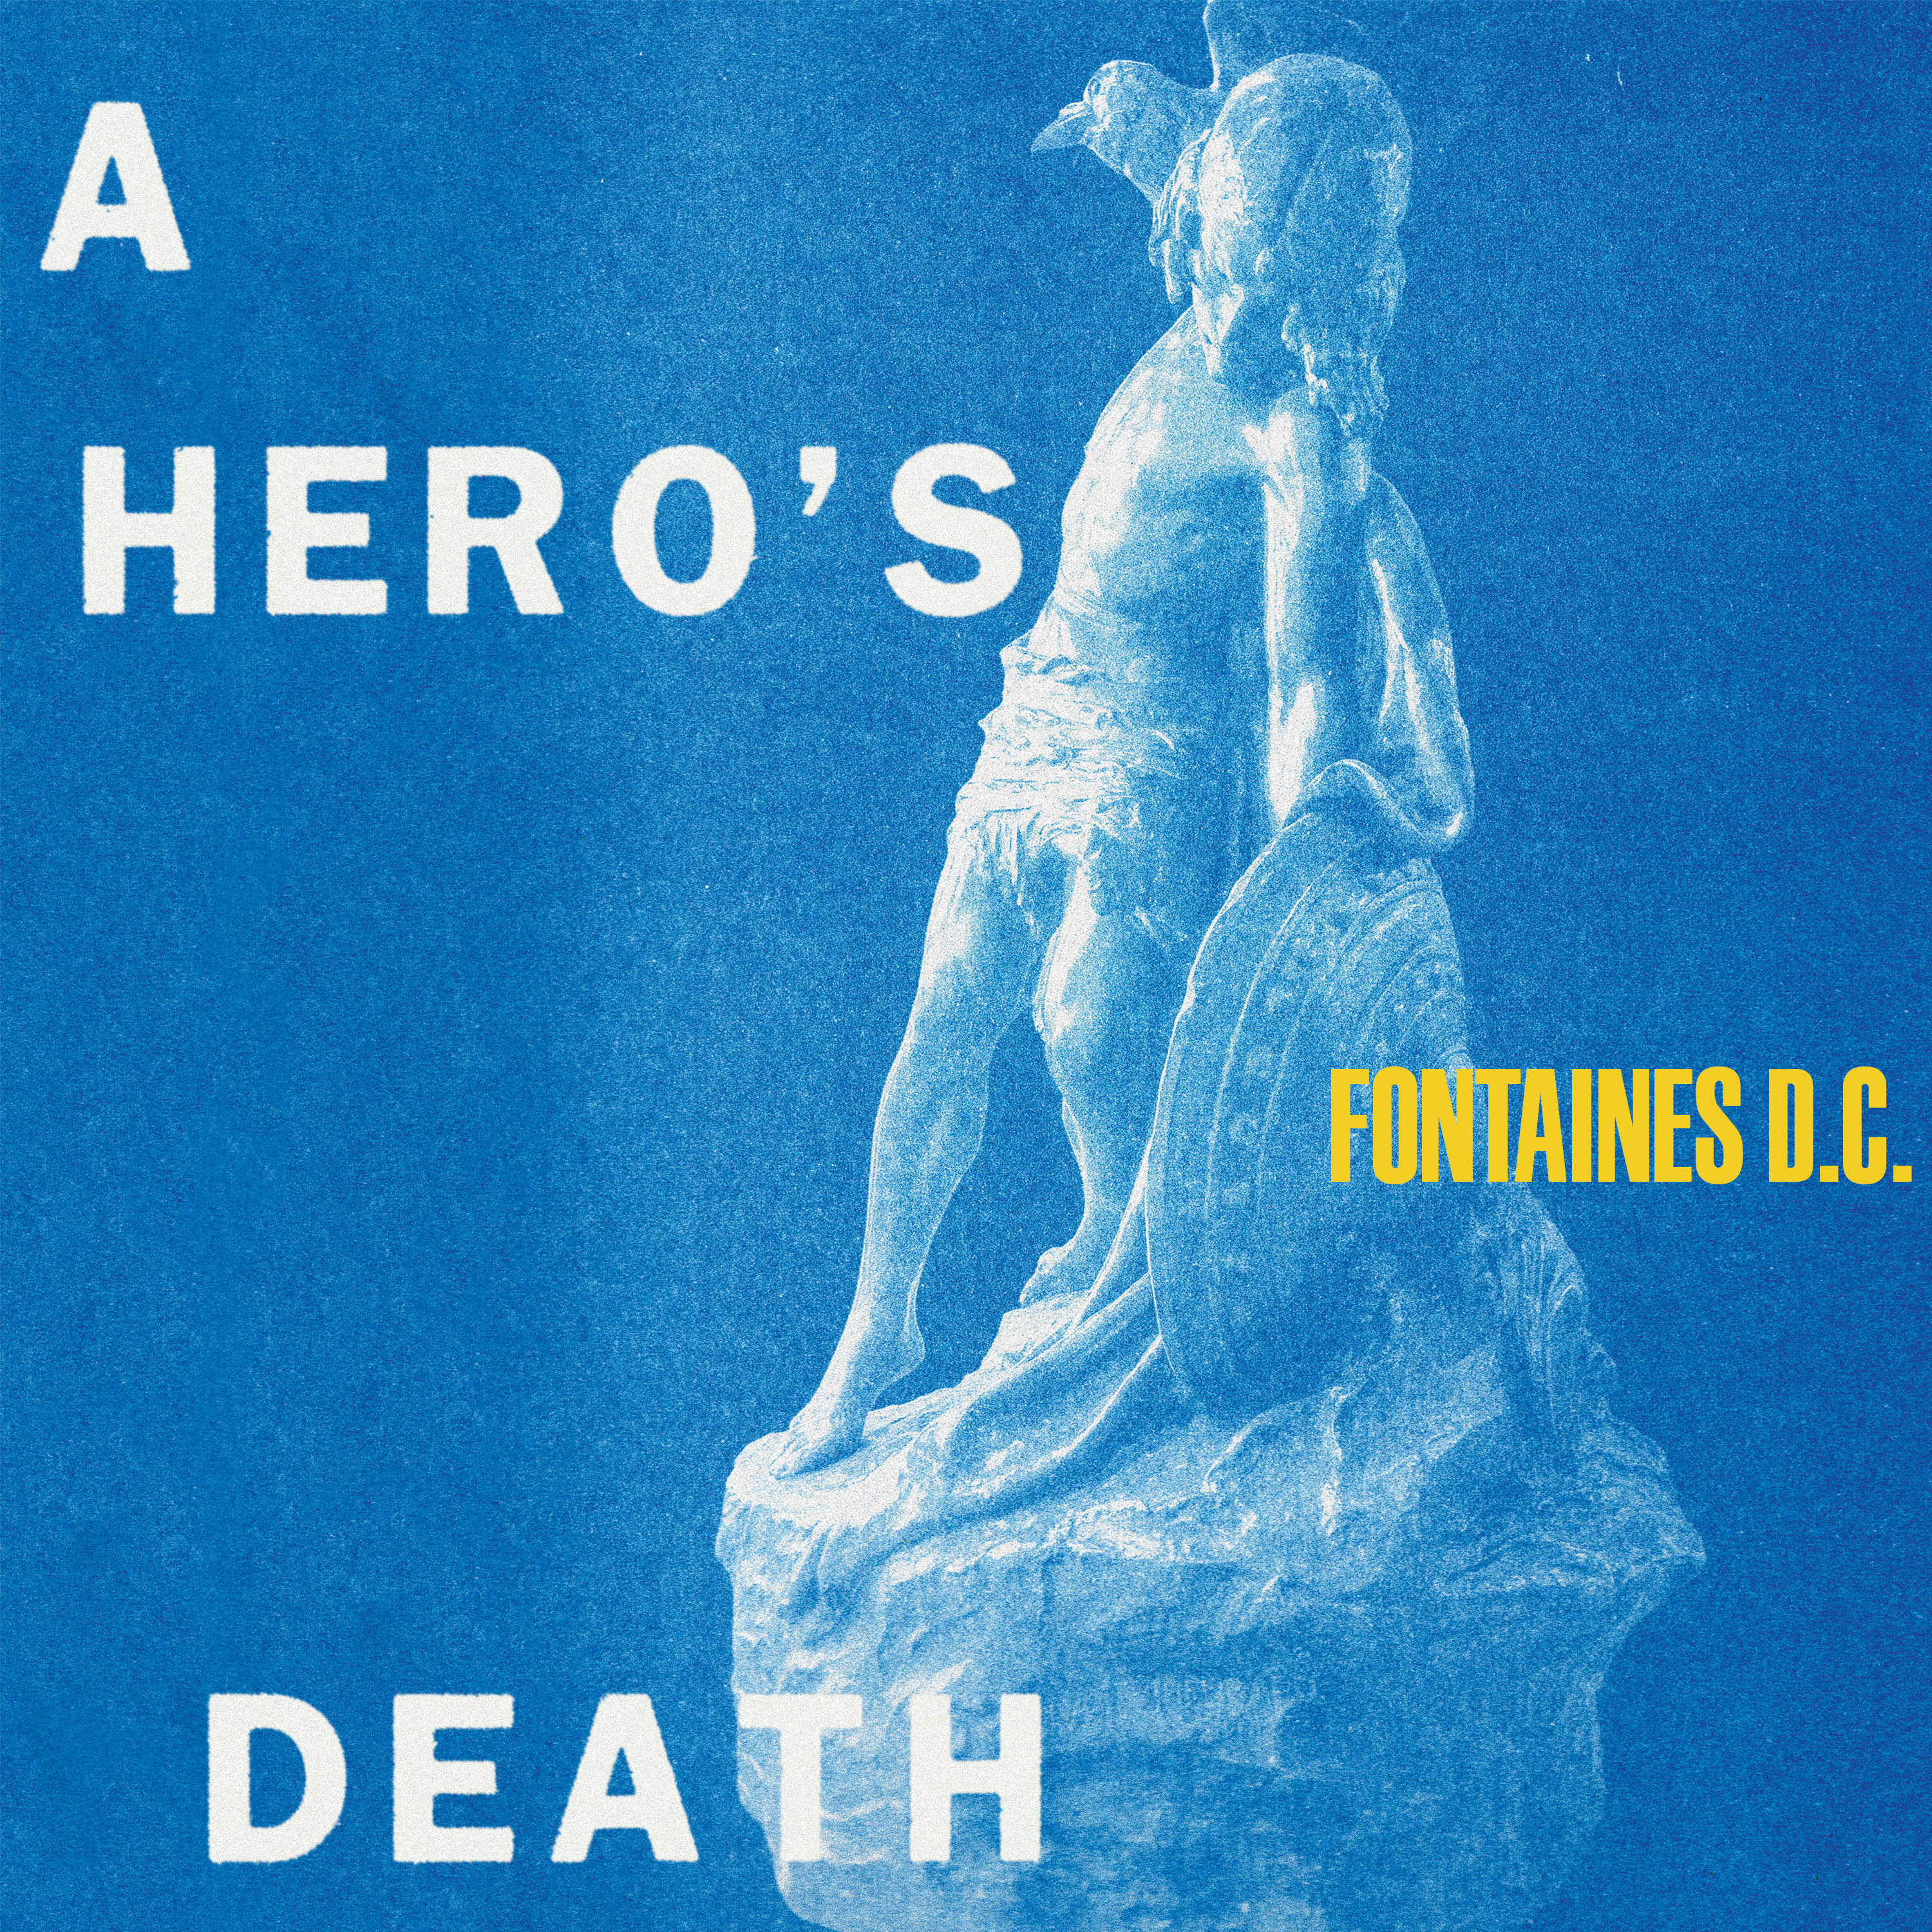 FONTAINES D.C - A Hero's Death